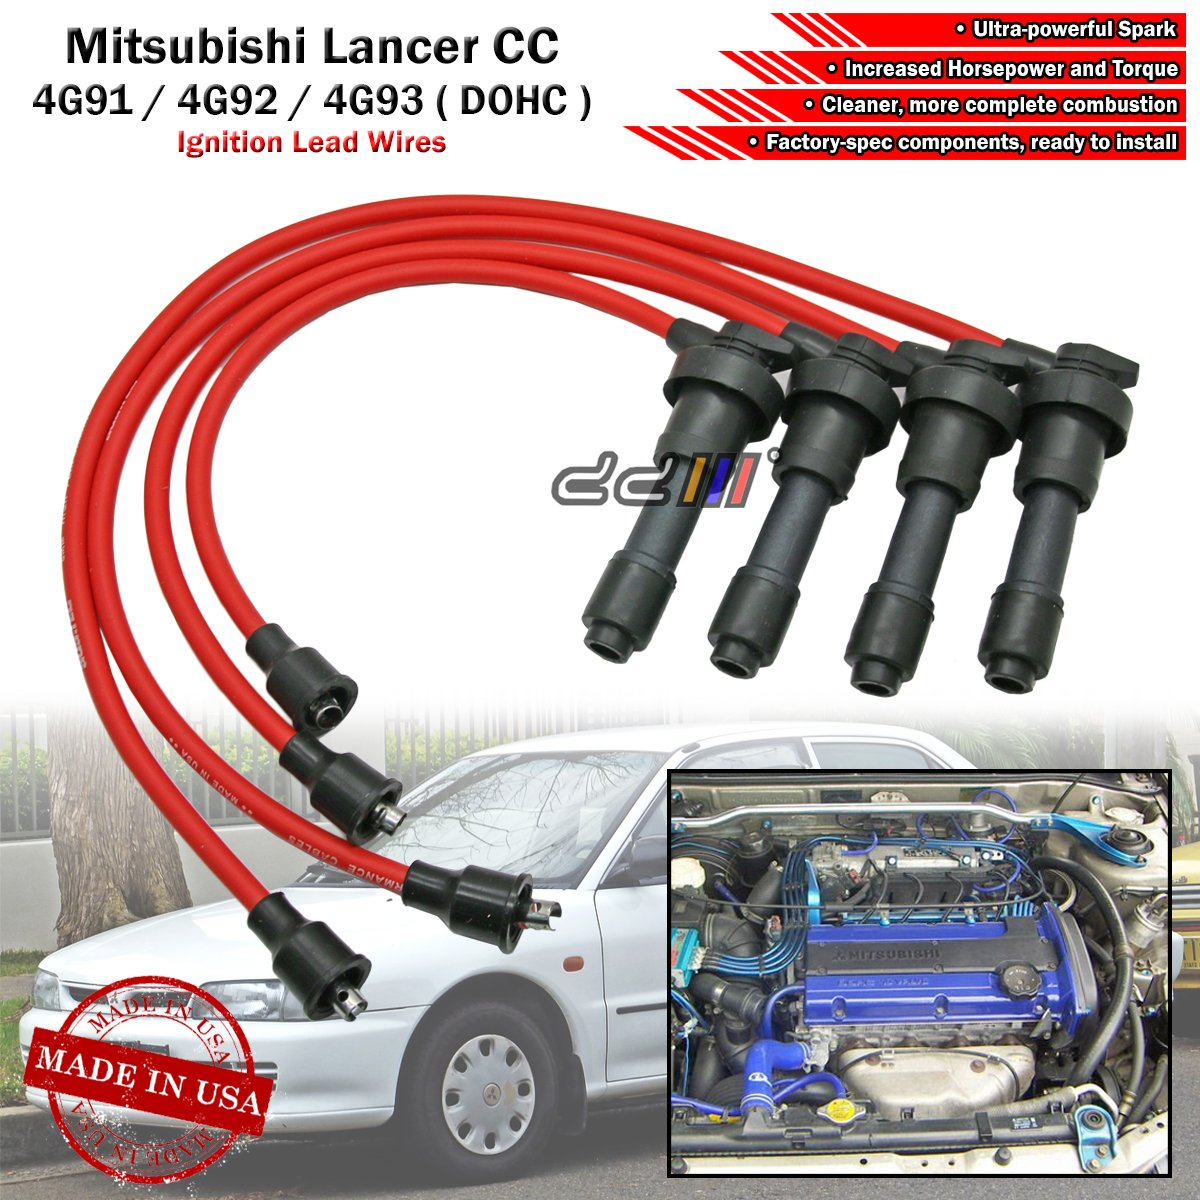 Mitsubishi 4g92 Wiring Diagram Sustec 8mm Spark Plug Cable Ignition Wire Set For Colt Lancer Mirage 15l 16l 18l 4g91 4g93 T Dohc Ca3a Ca4a Ca5a Cb3a